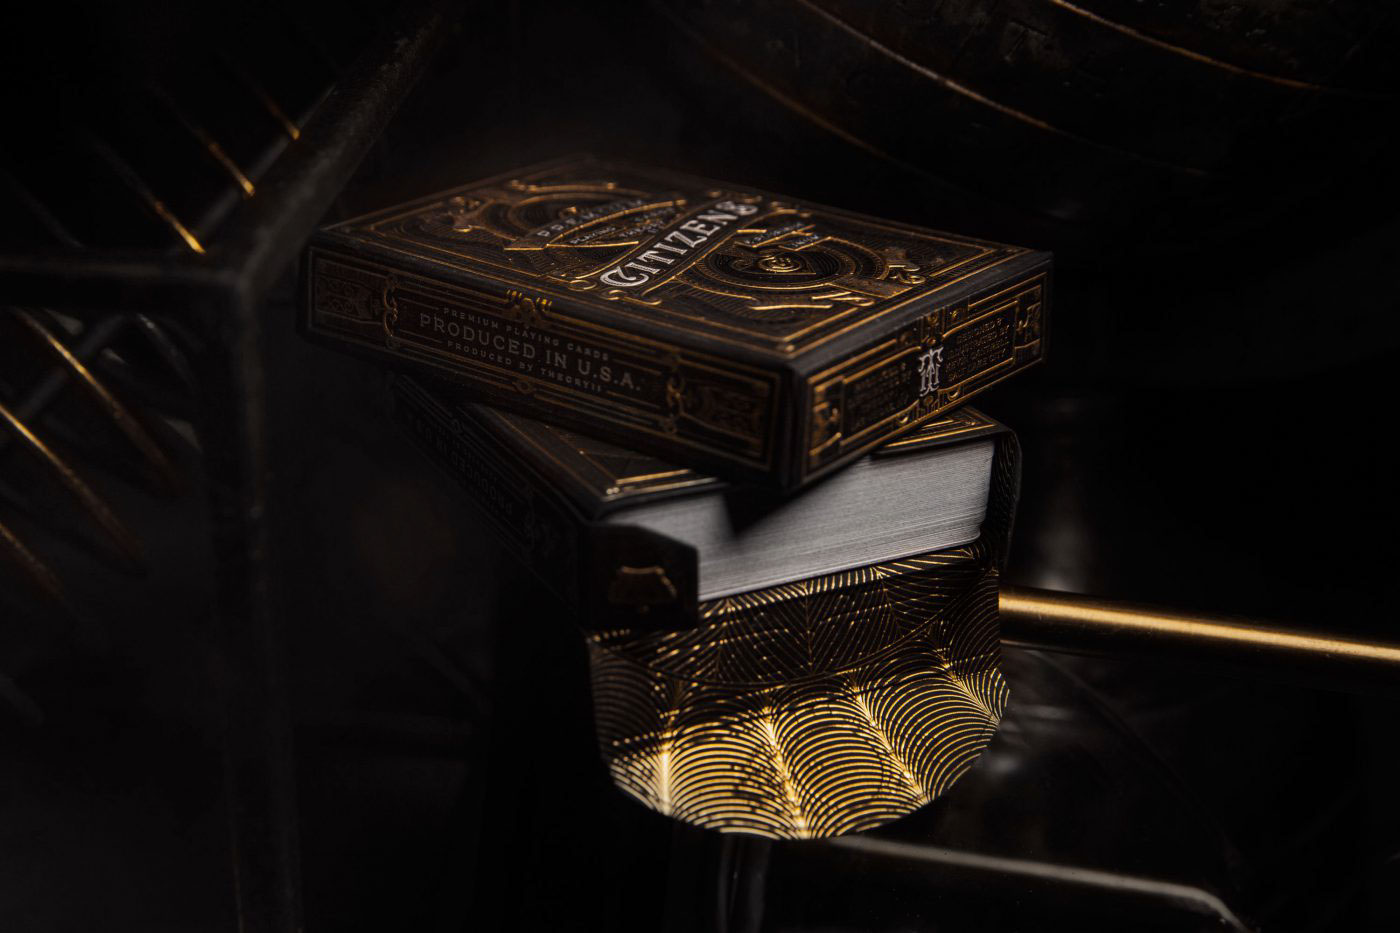 Kevin Cantrell Kevin Cantrell Design theory11 Citizens Playing Cards Playing Cards packaging design playing card design gold foil hot stamping luxury laser-etched Guilloché pattern engraving &reach Satellite Office